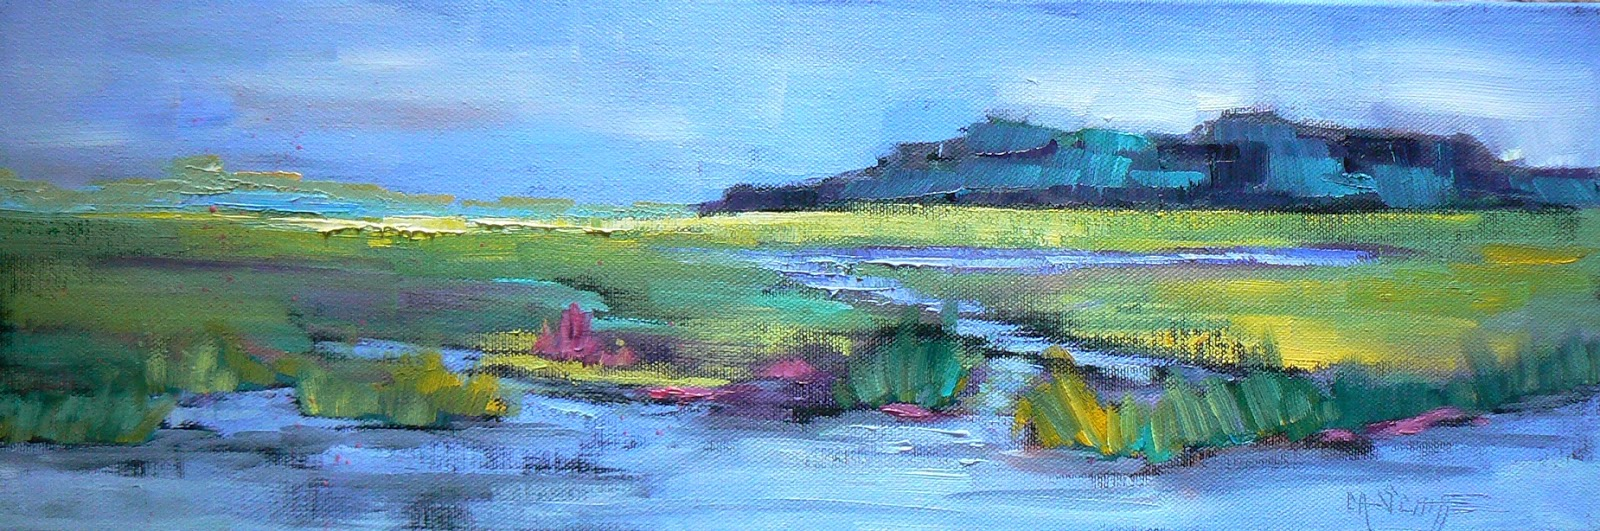 Palette Knife Painters Marsh Landscape Painting Daily Painting